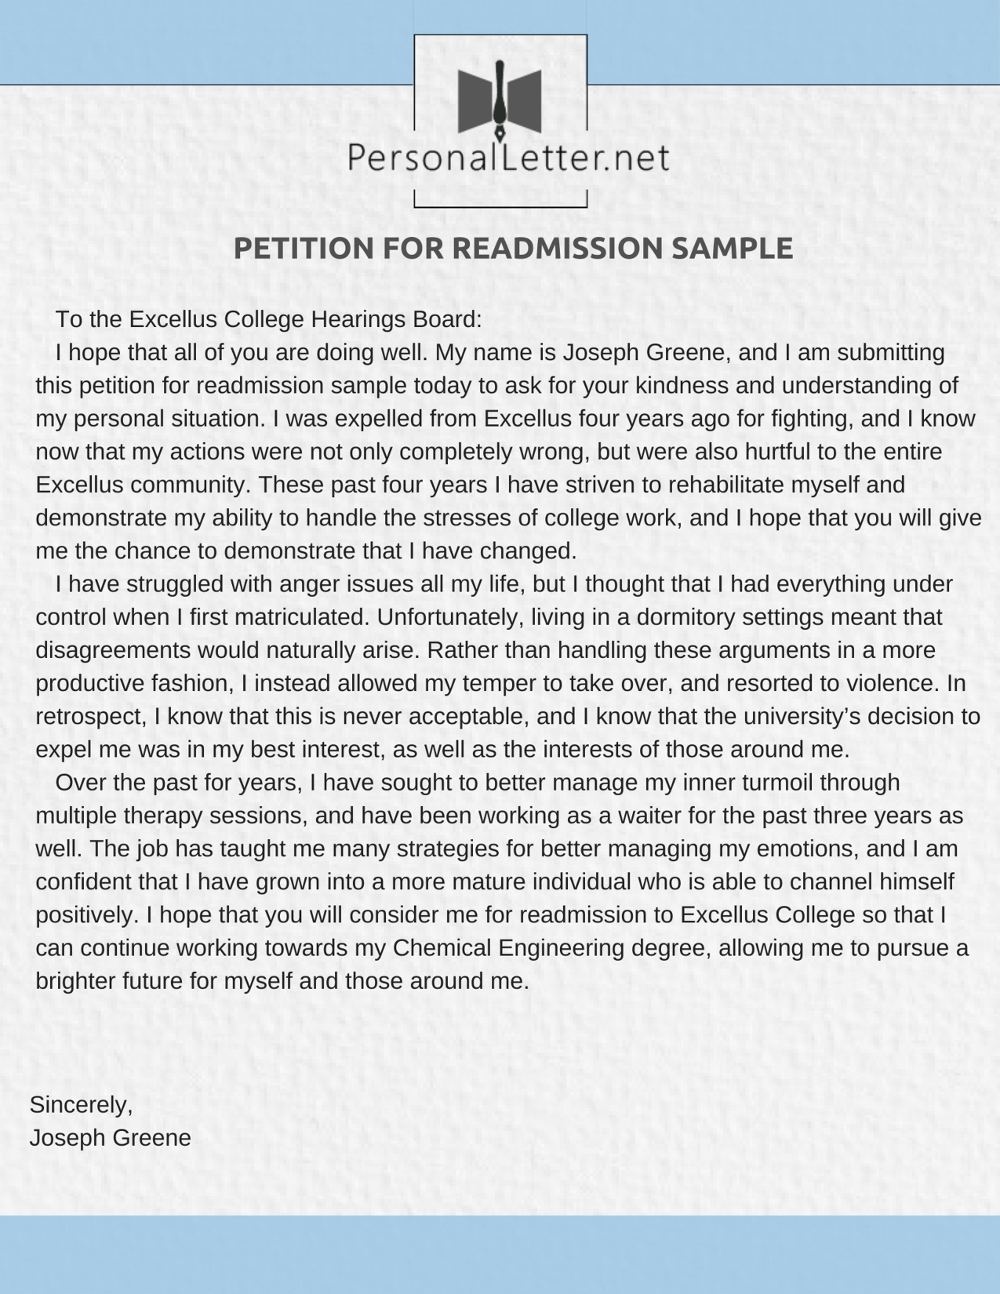 petition for readmission sample letter